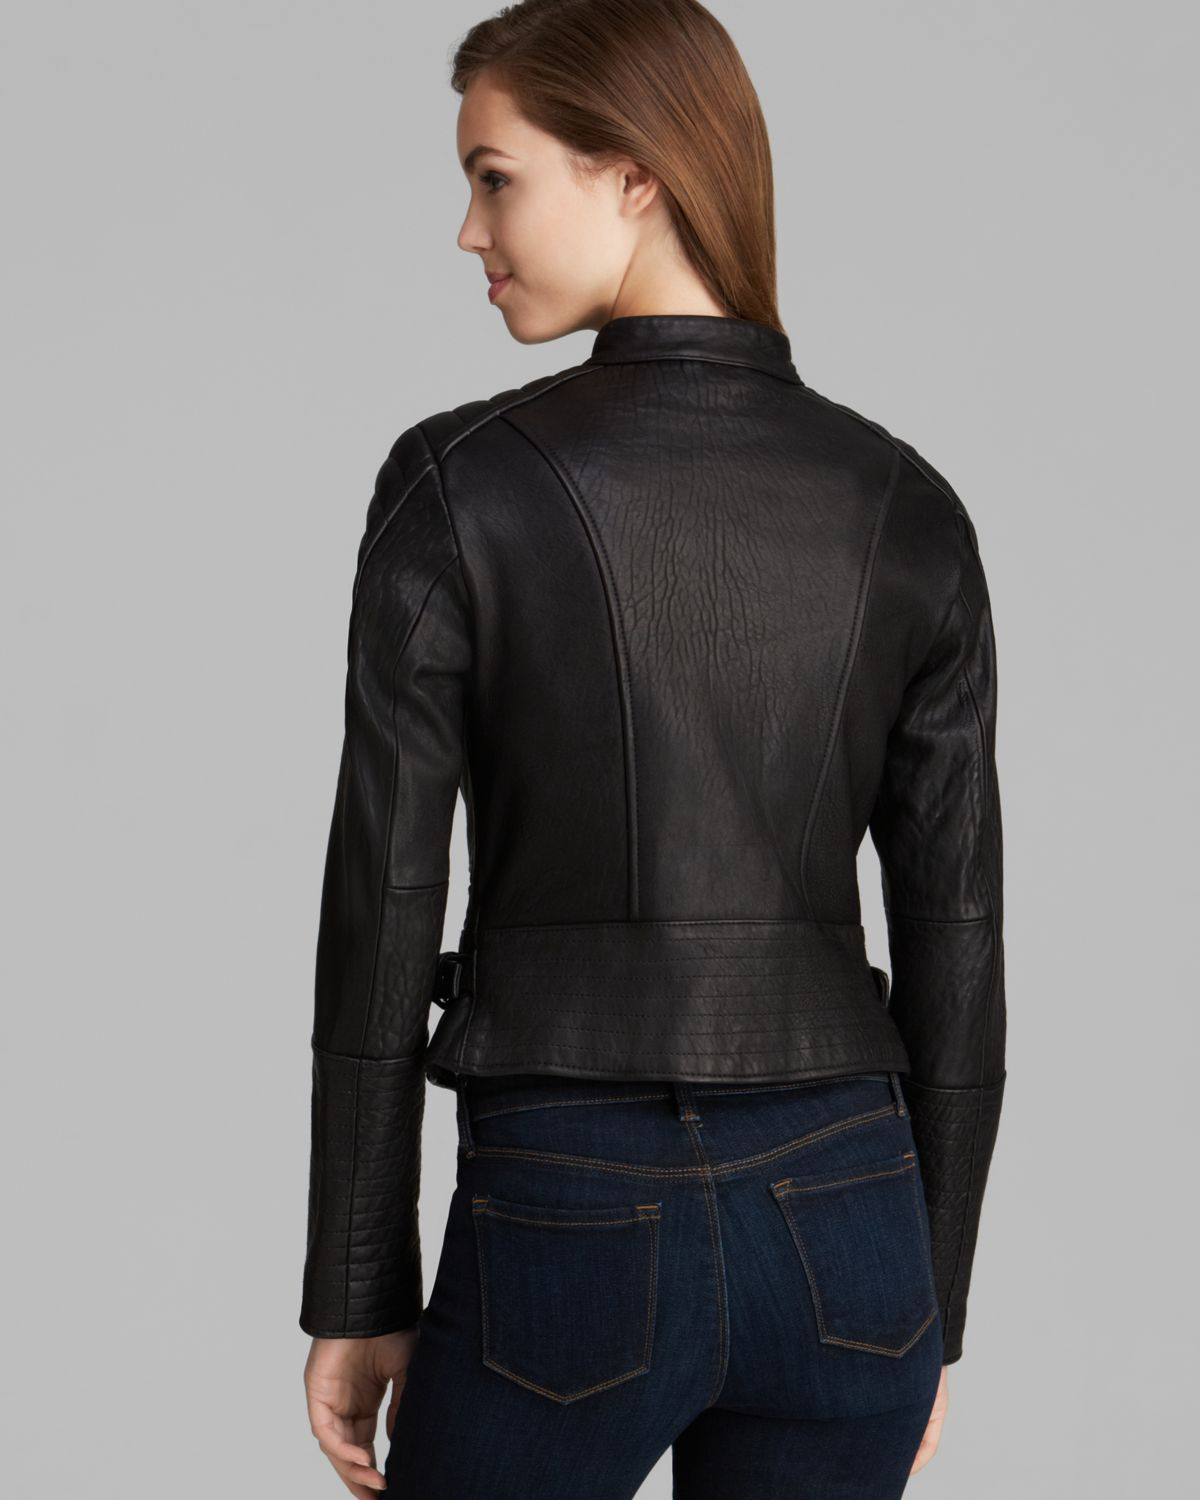 Dawn Levy Jacket Turtle Moto Leather In Black Lyst